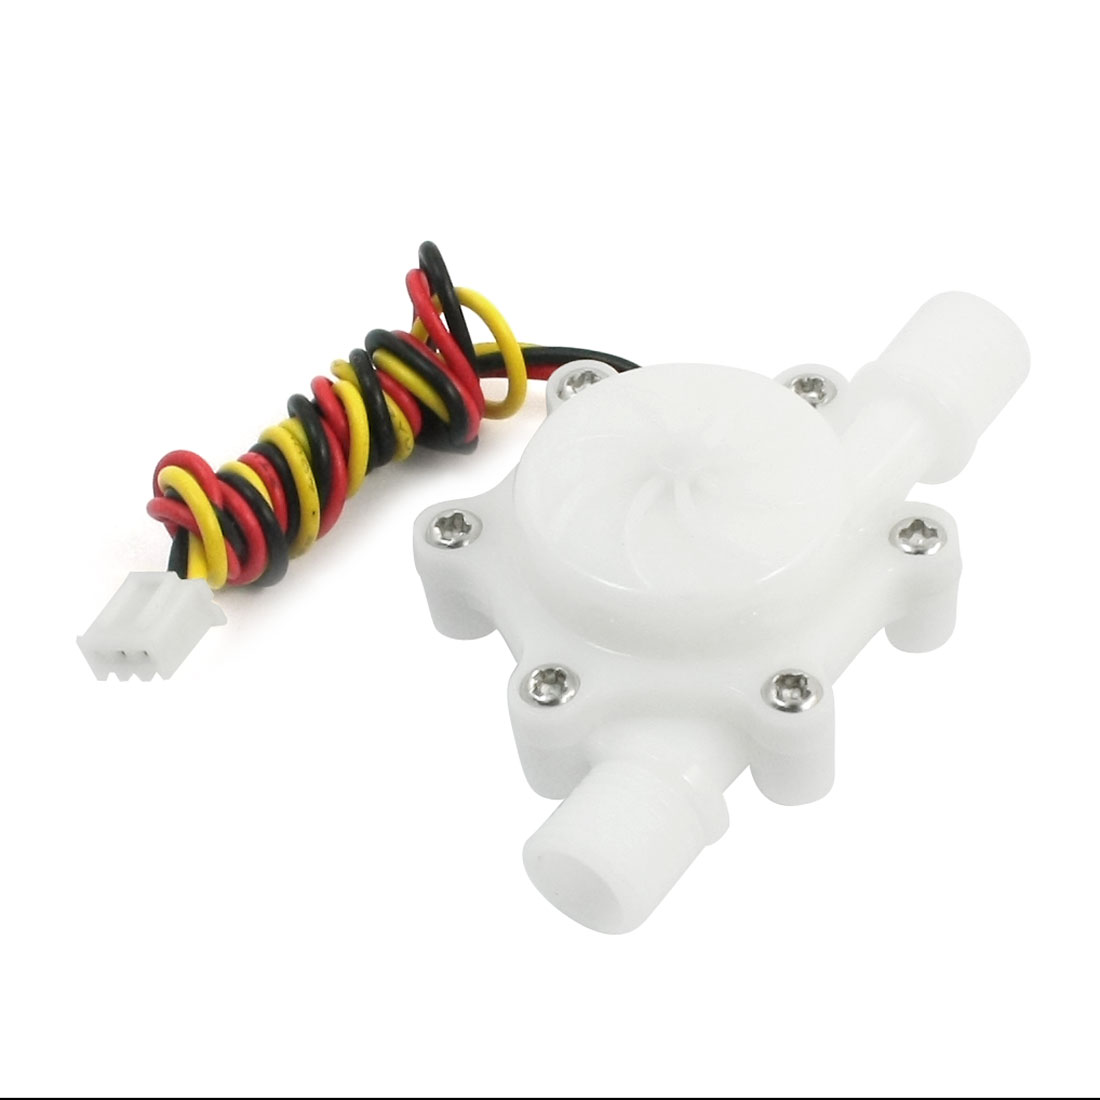 0.15-1.5L/min G1/4 Male Thread Double Ended Hall Effect Water Flow Sensor